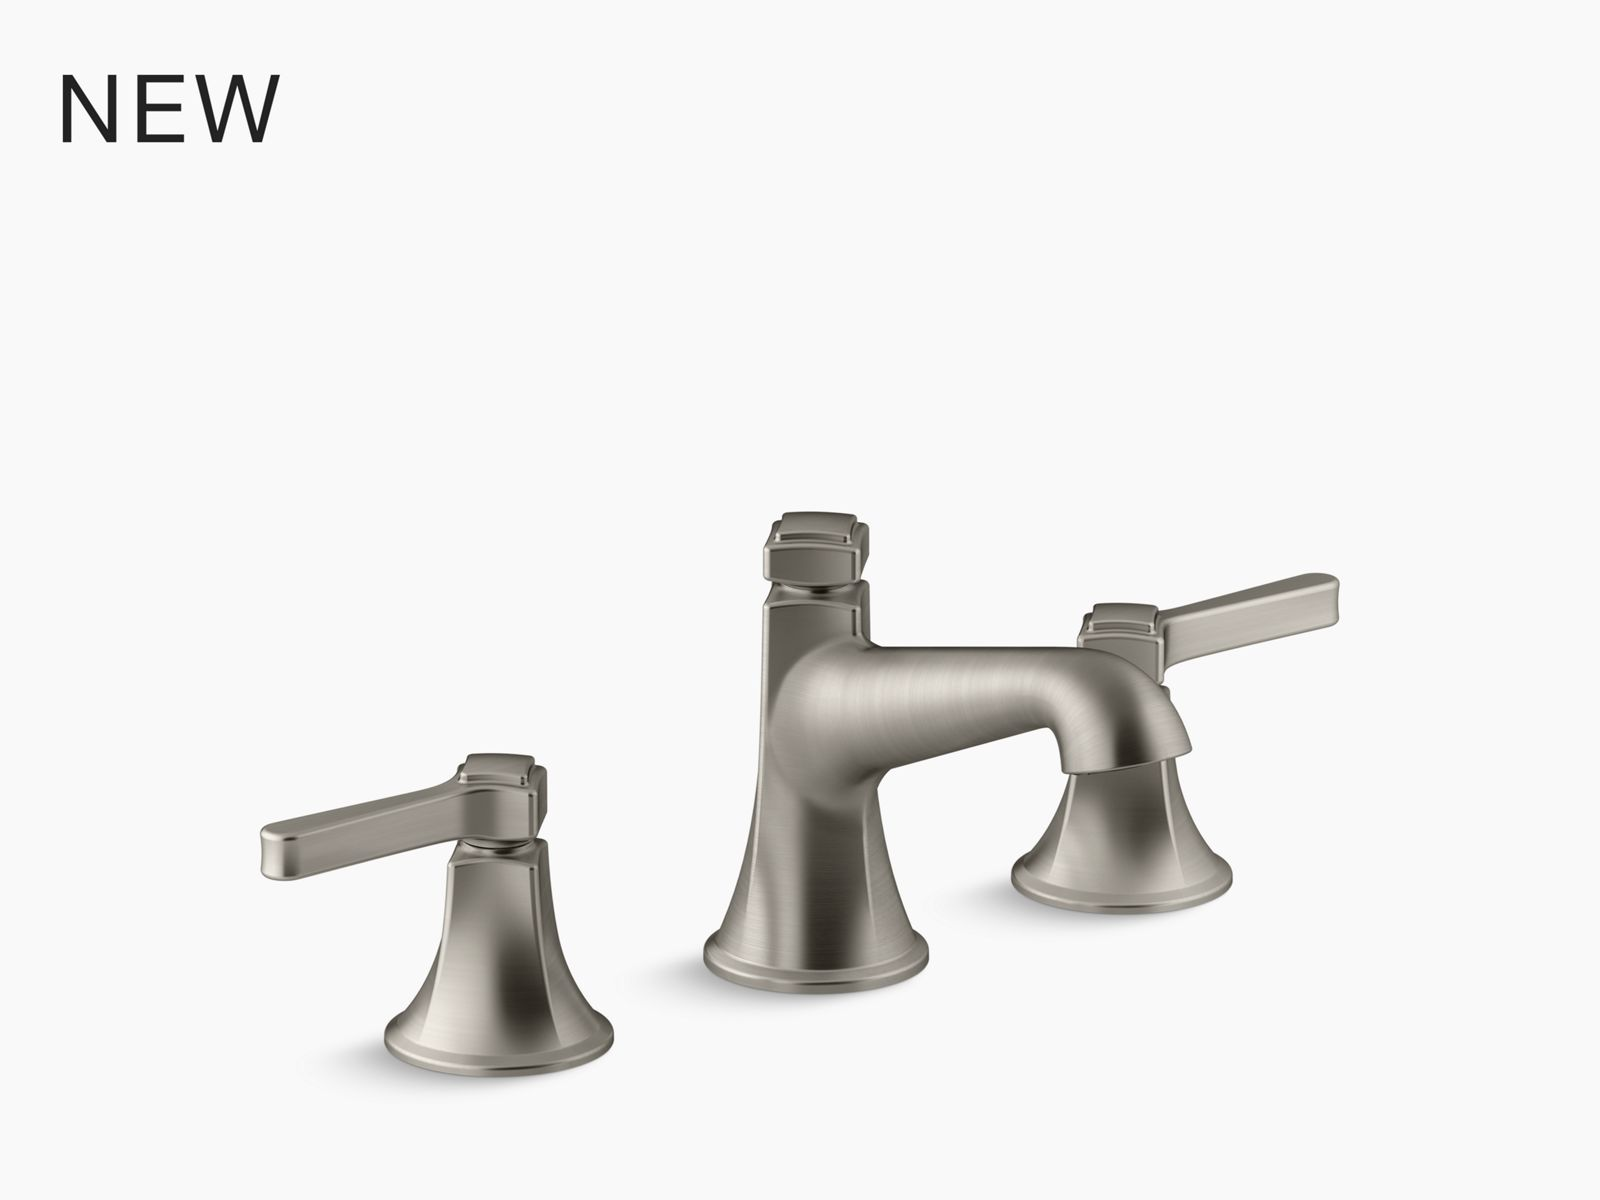 purist wall mount touchless faucet trim with insight technology and 9 90 degree spout requires valve